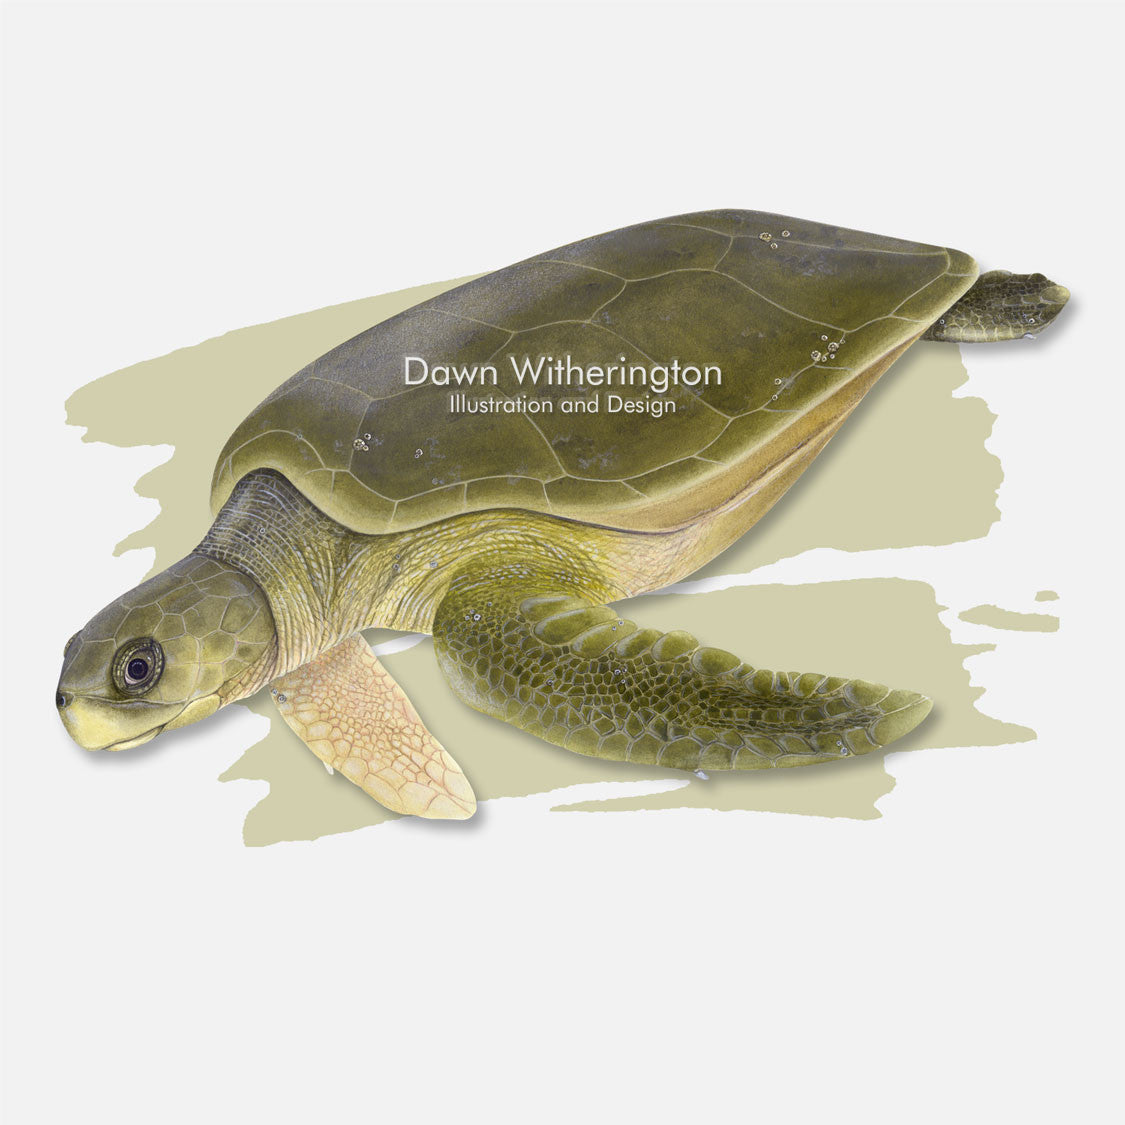 This beautiful illustration is of a flatback sea turtle, Natator depressus, over a swash graphic.